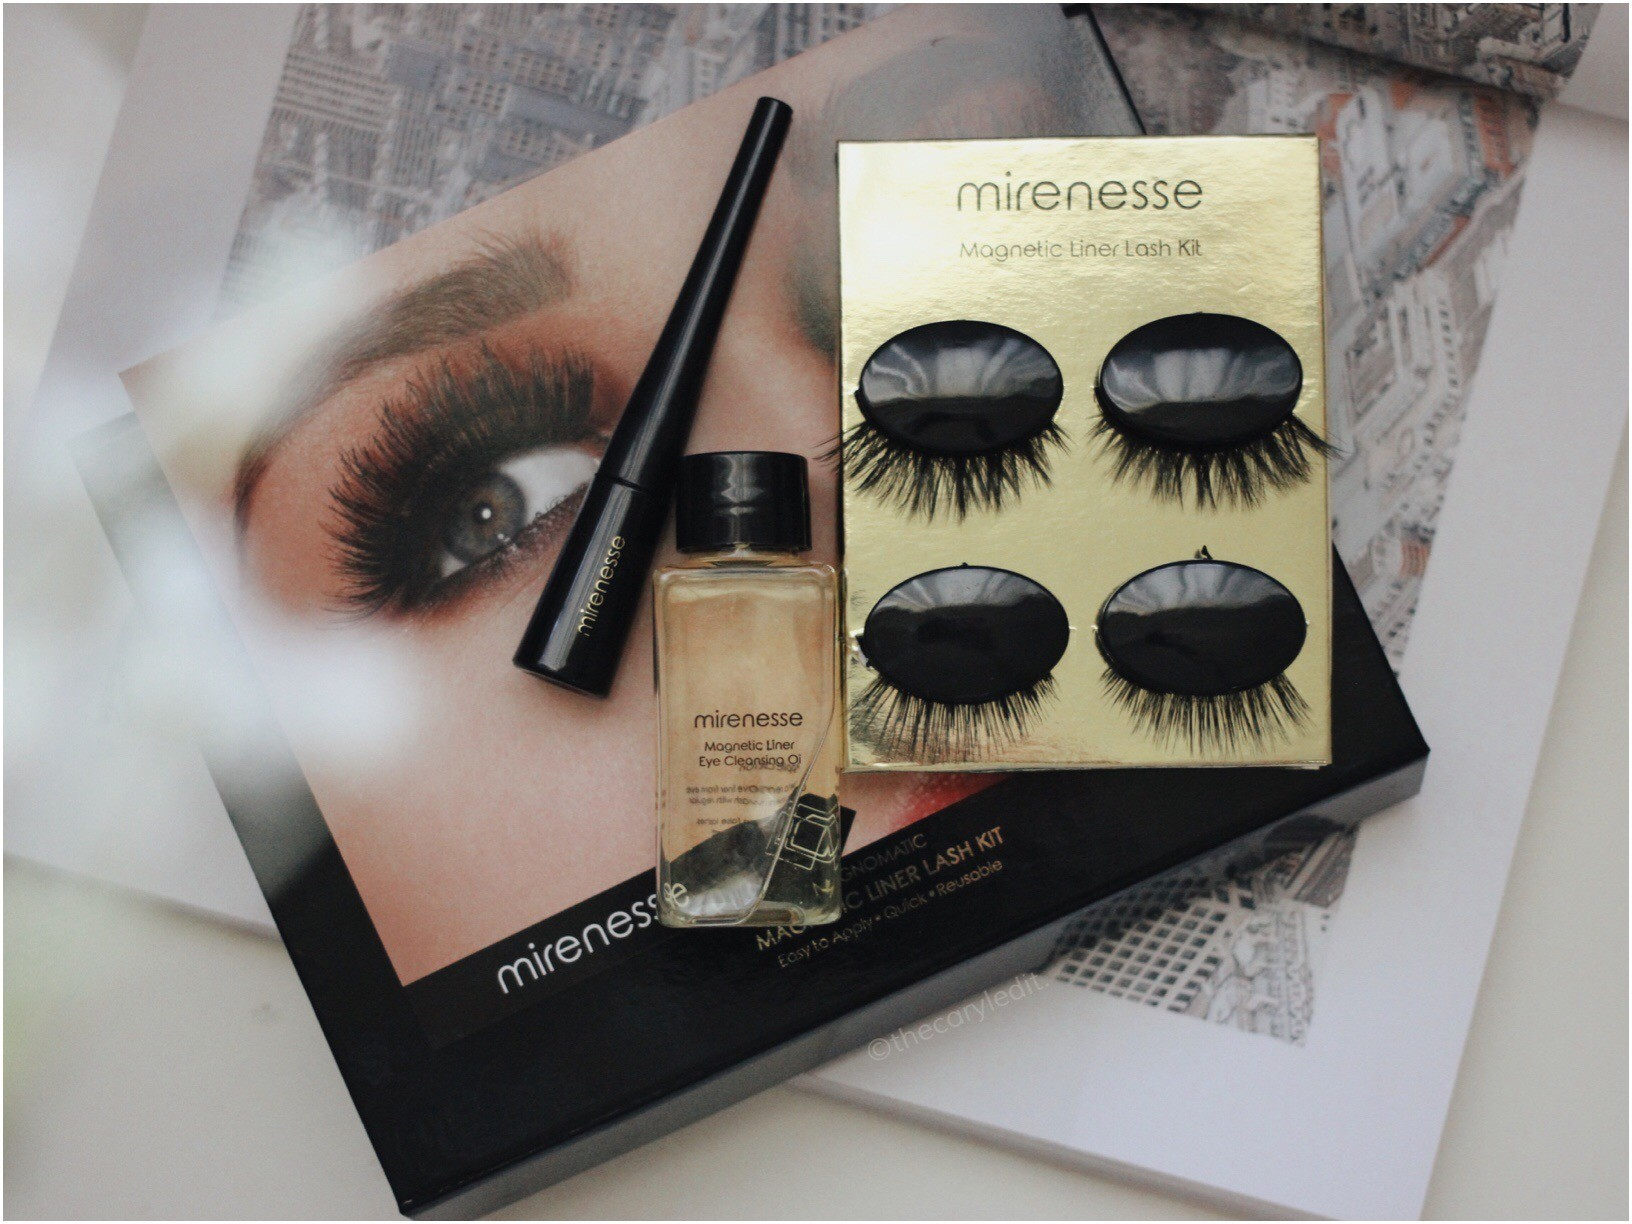 MIRENESSE: Magnomatic, Line, Click, Wow Liner & Lash Kit